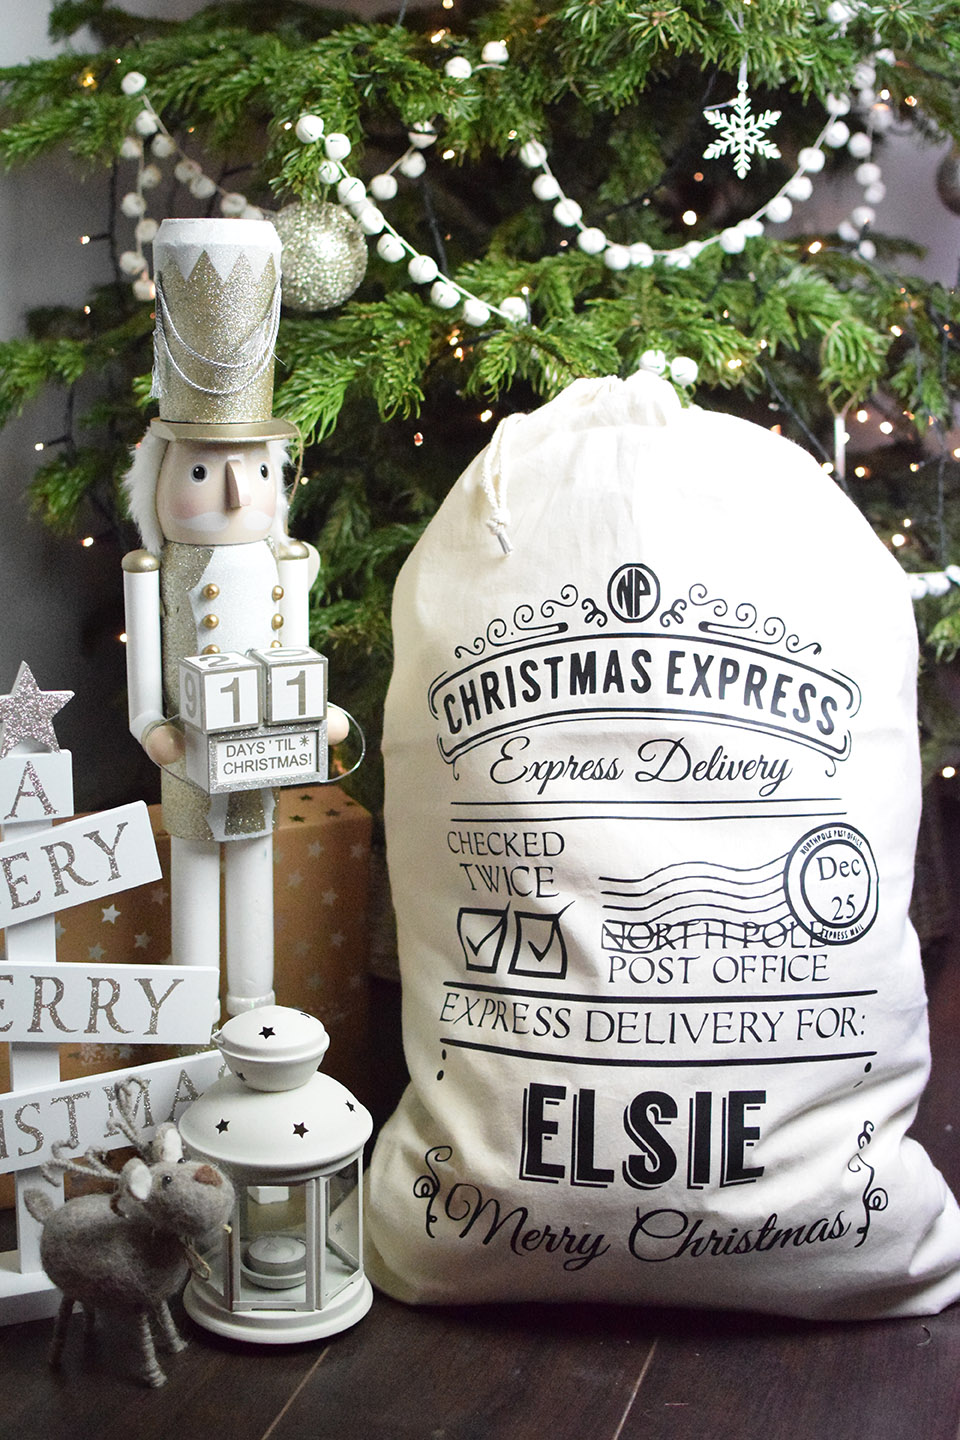 Personalised Santa Sack   : £18  A personalised Santa Sack can be used year after year. Make one of these part of your child's favourite Christmas memories. Available in natural or black cotton. Upgrade also available to add the name in gold.   - Lone Owl Studio